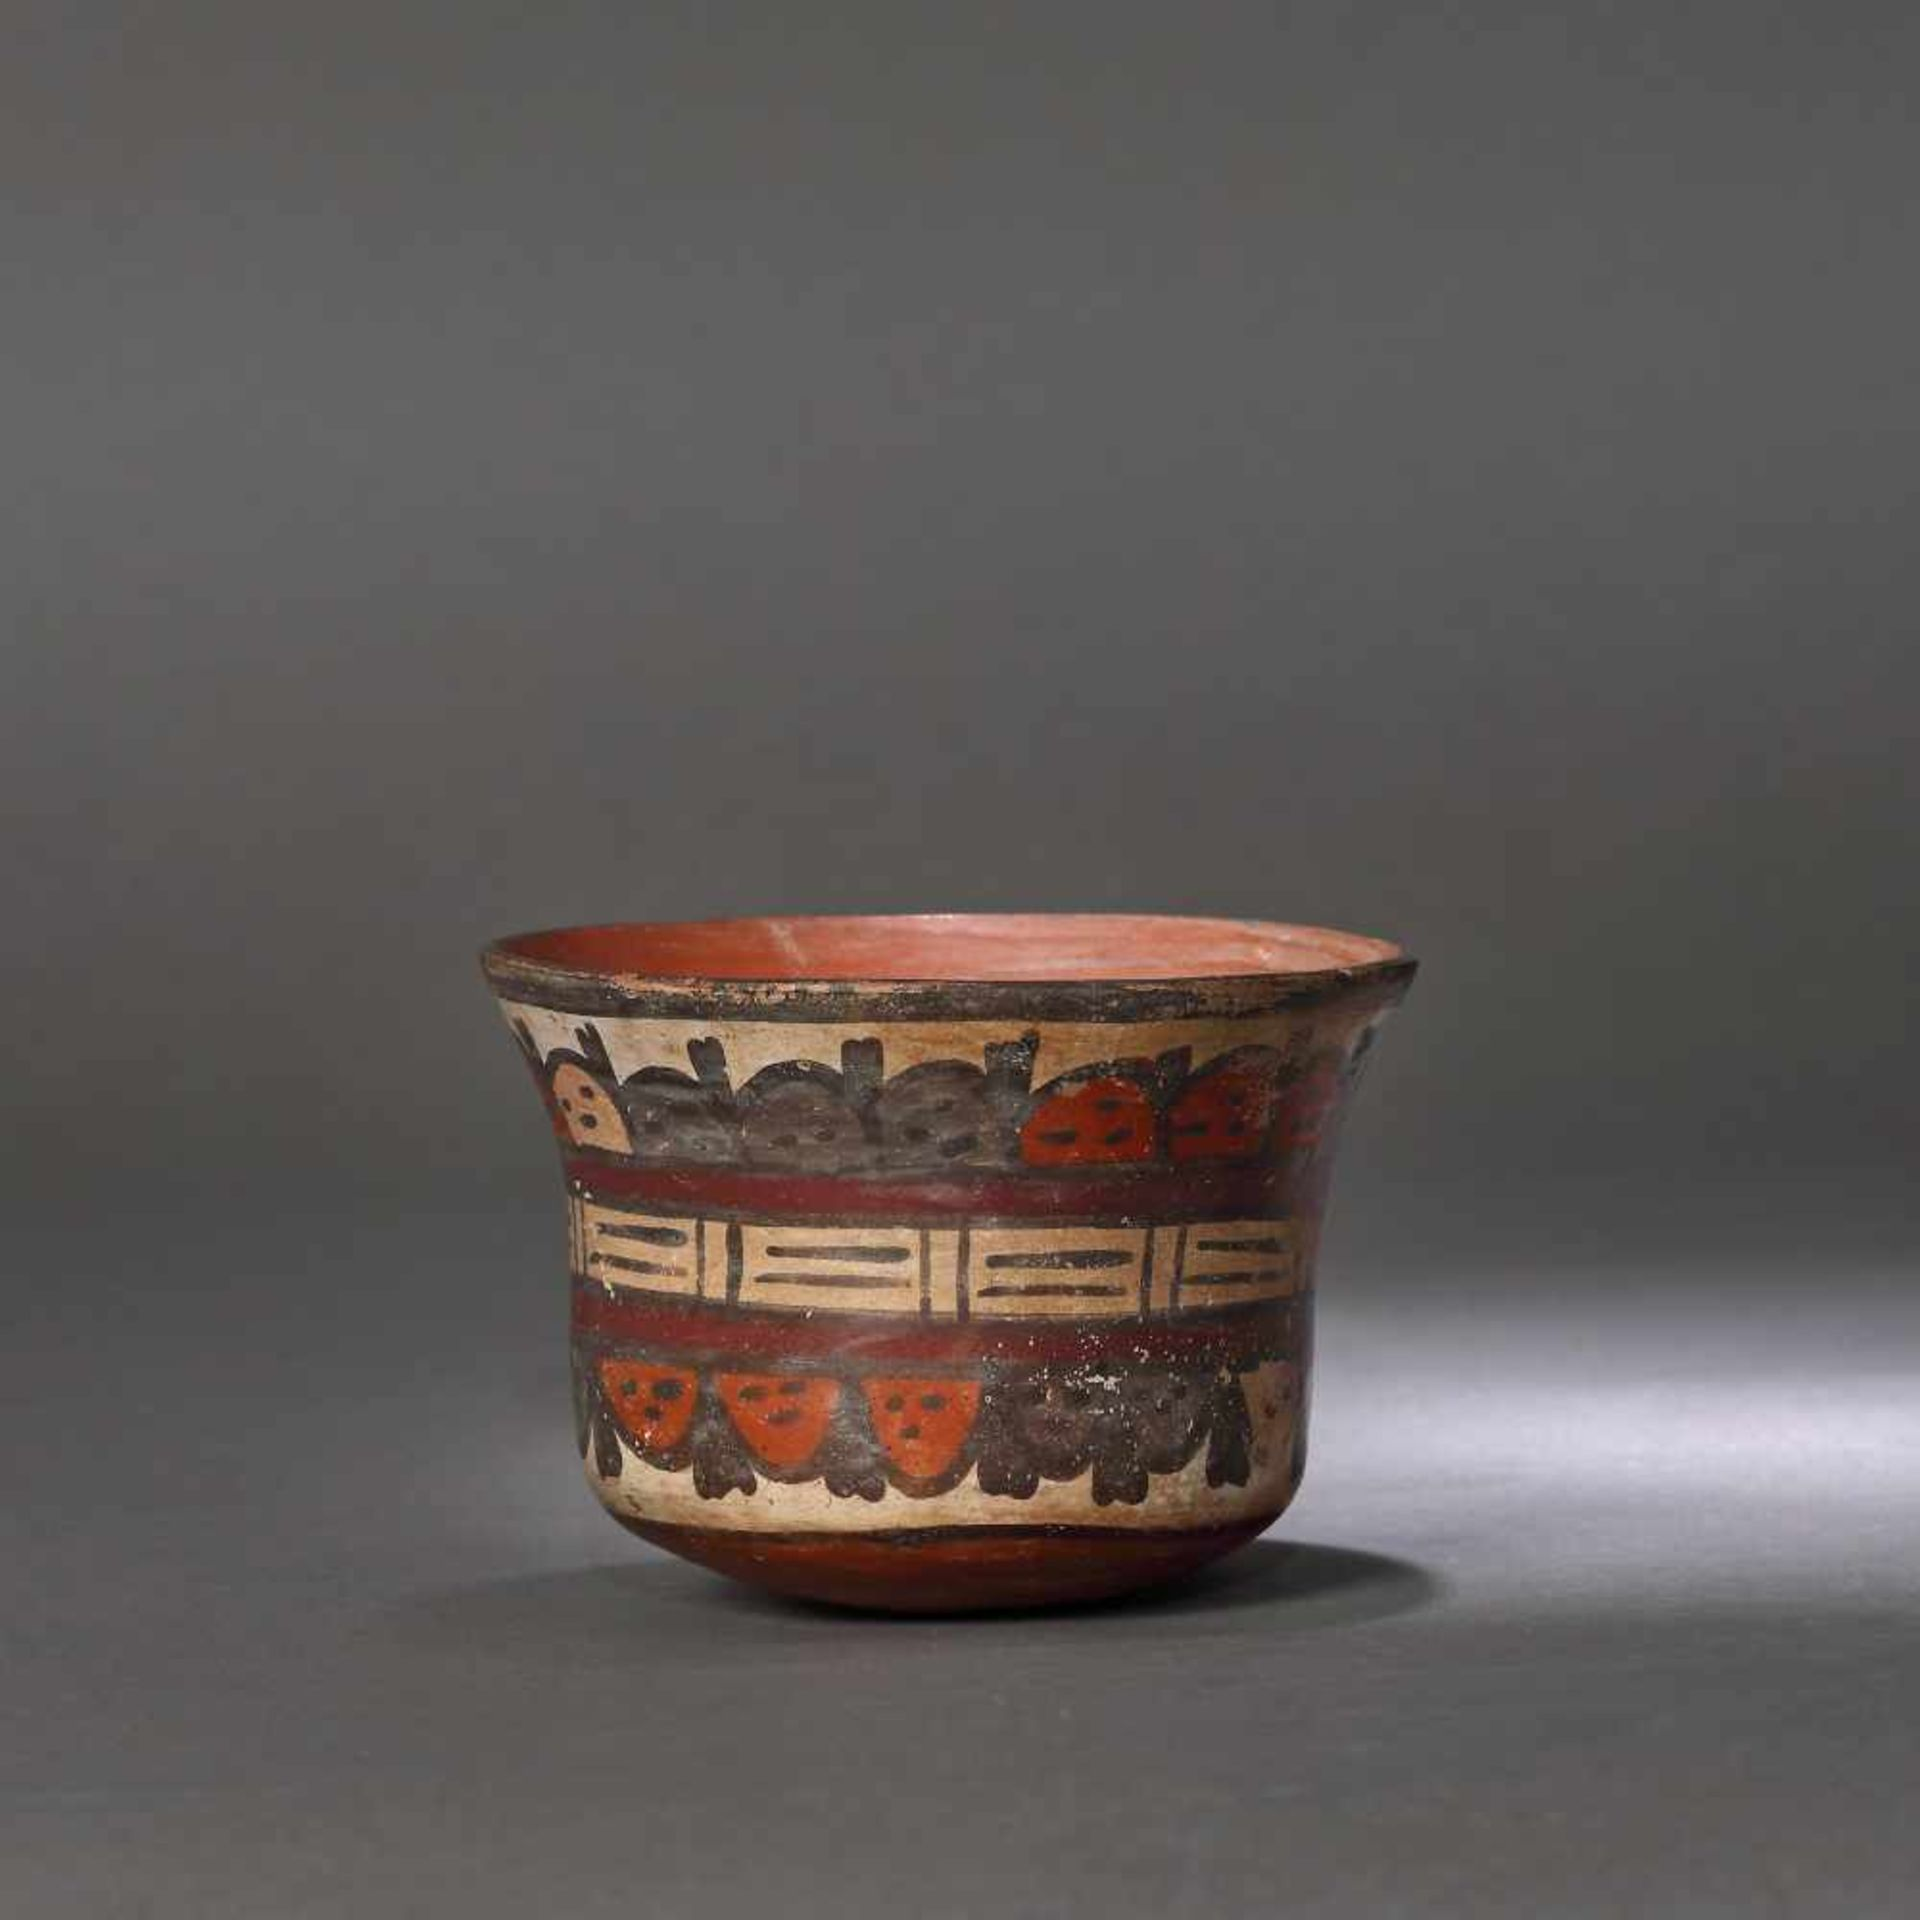 Painted ceramic vessel, decorated with beheaded heads, Nazca culture, Peru, approx. 1,350 years old,